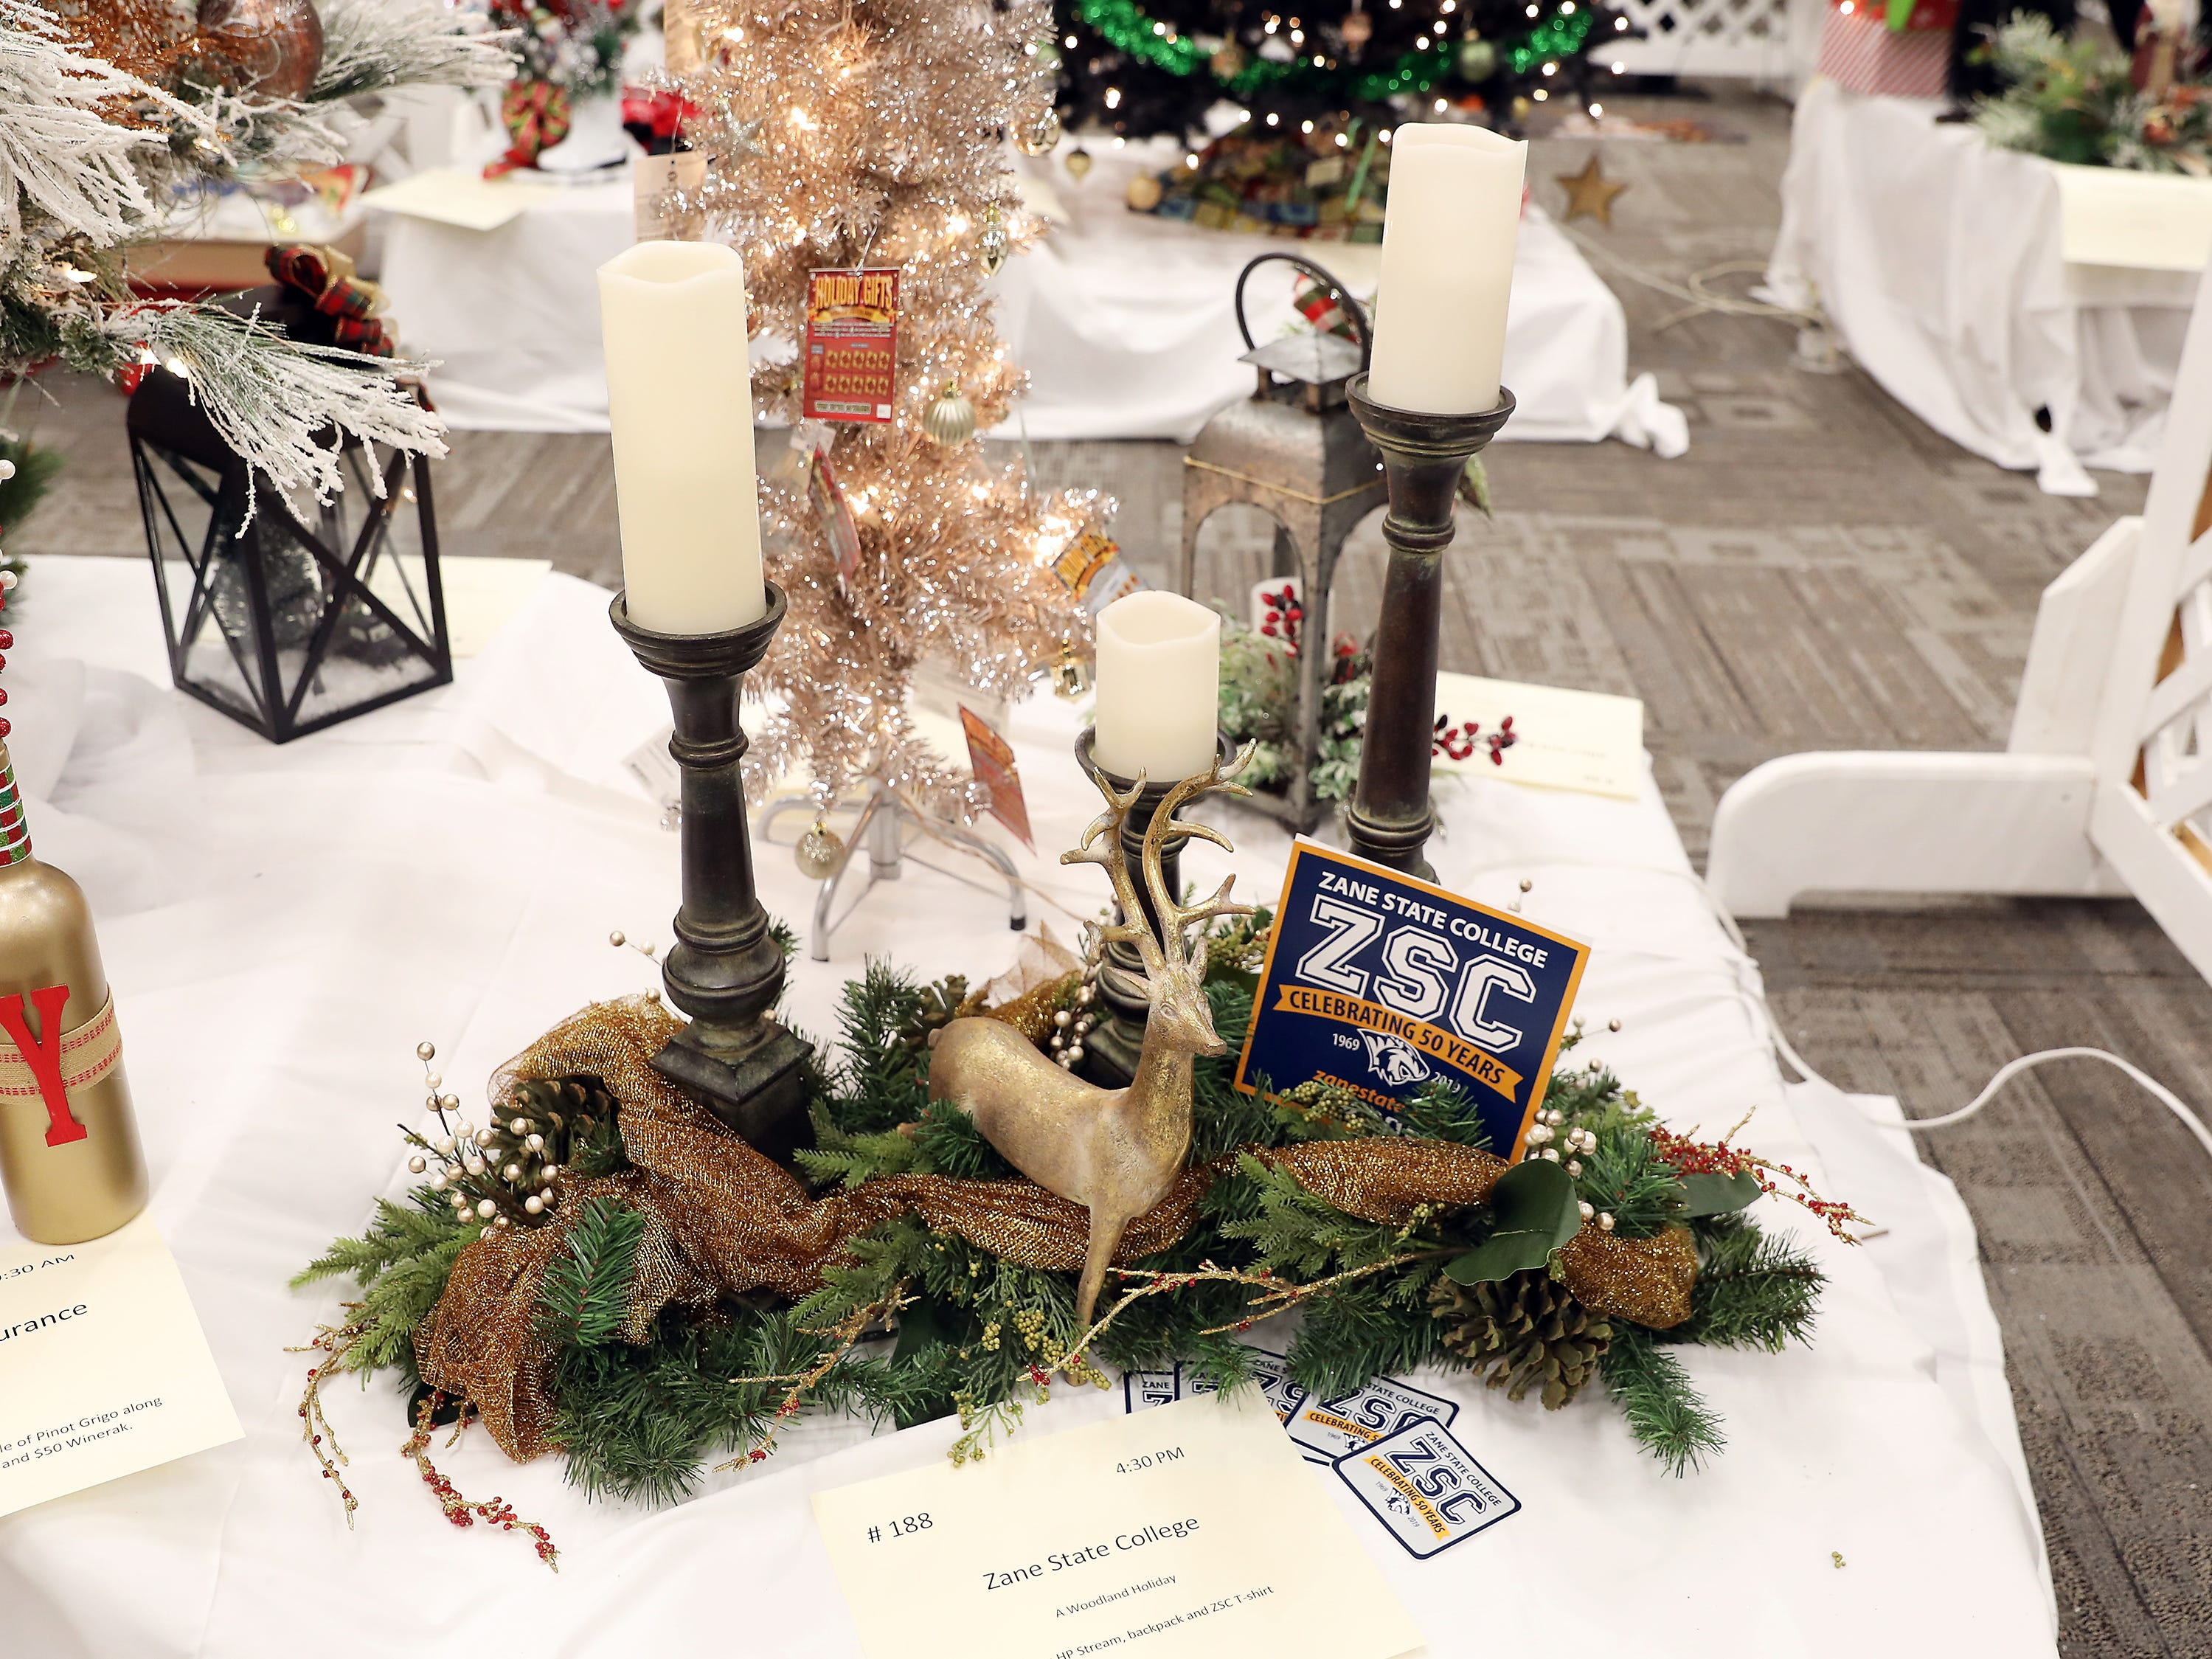 188	4:30 PM	Zane State College	Centerpiece	A Woodland Holiday	Beautiful centerpiece for your holiday table.  Includes three tiered candlesticks, remote control candles, pine garland and bronze deer.		HP Stream, backpack and ZSC T-shirt